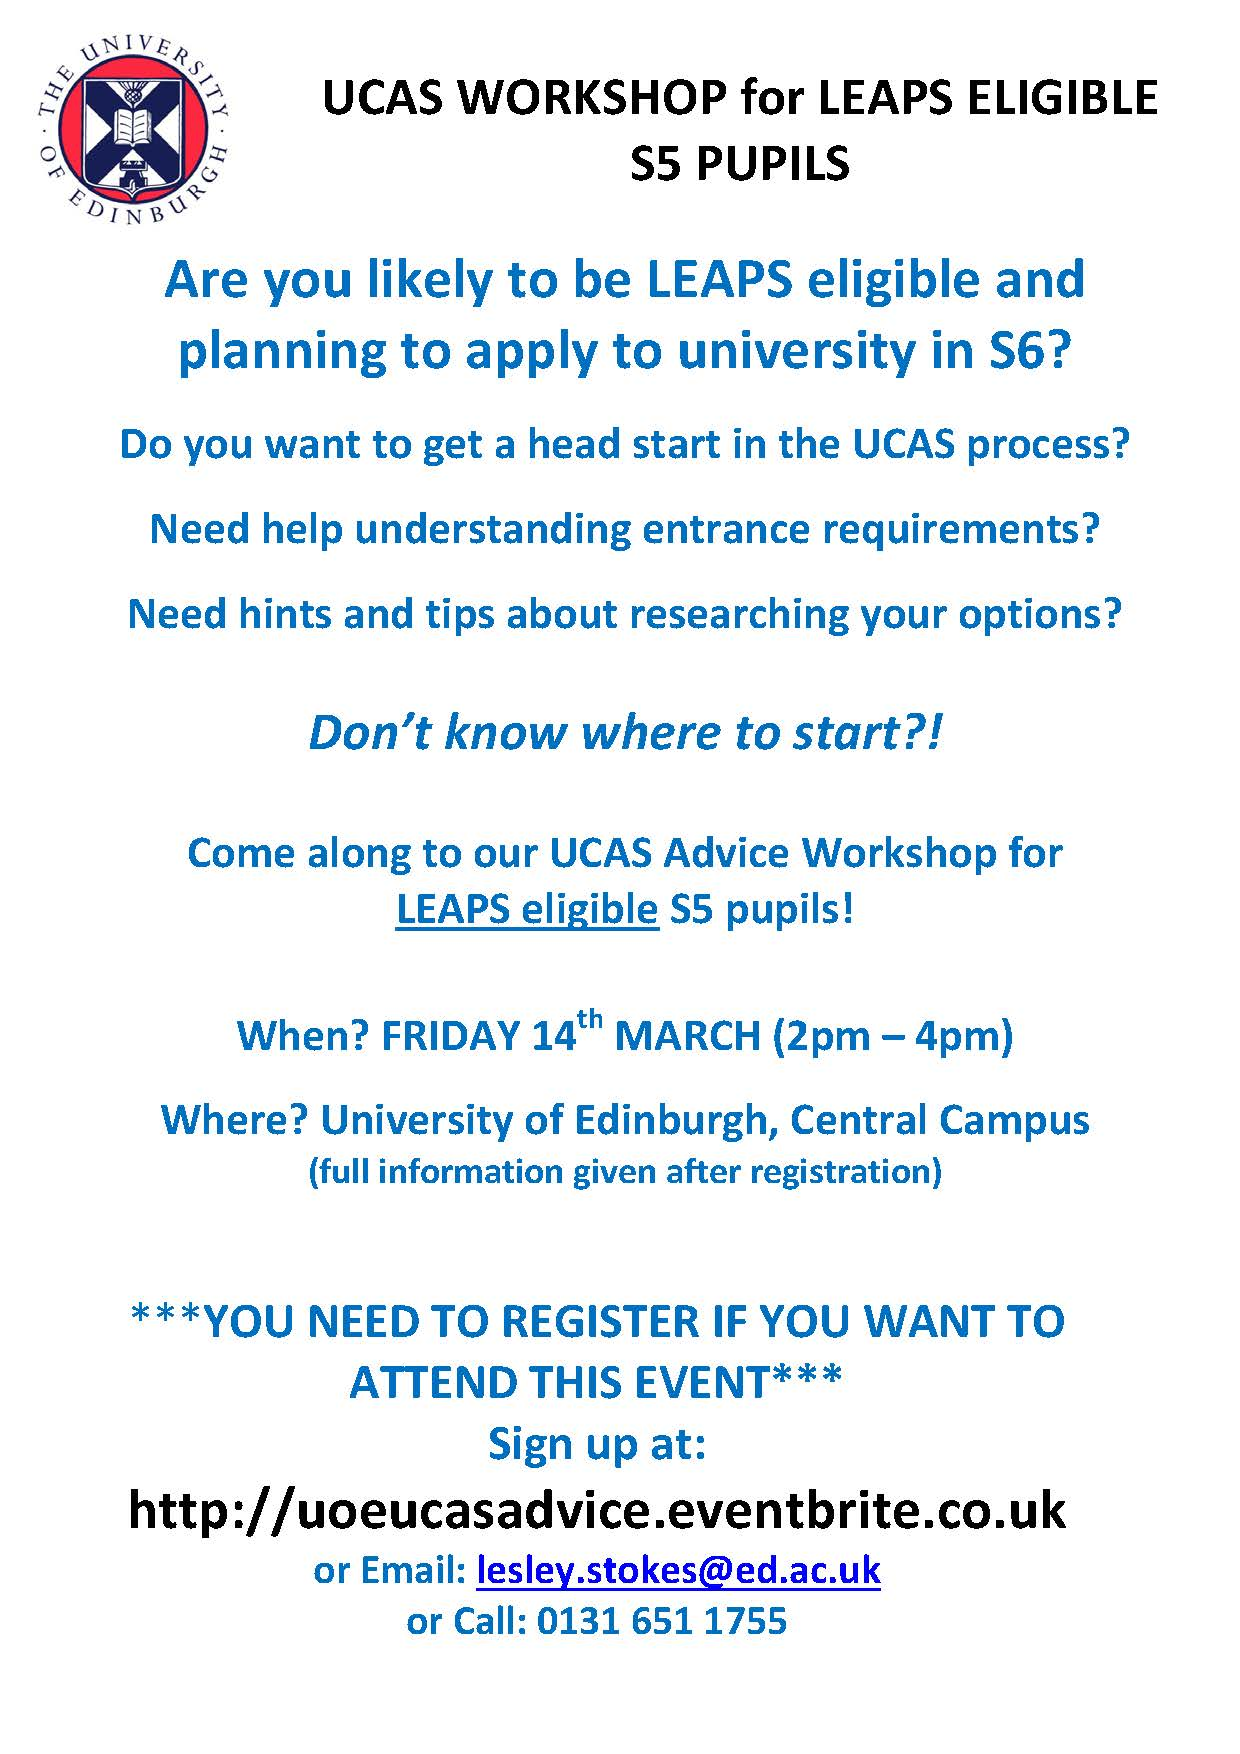 UoE_LEAPS_UCAS_Workshop_Poster_14thMarch2014